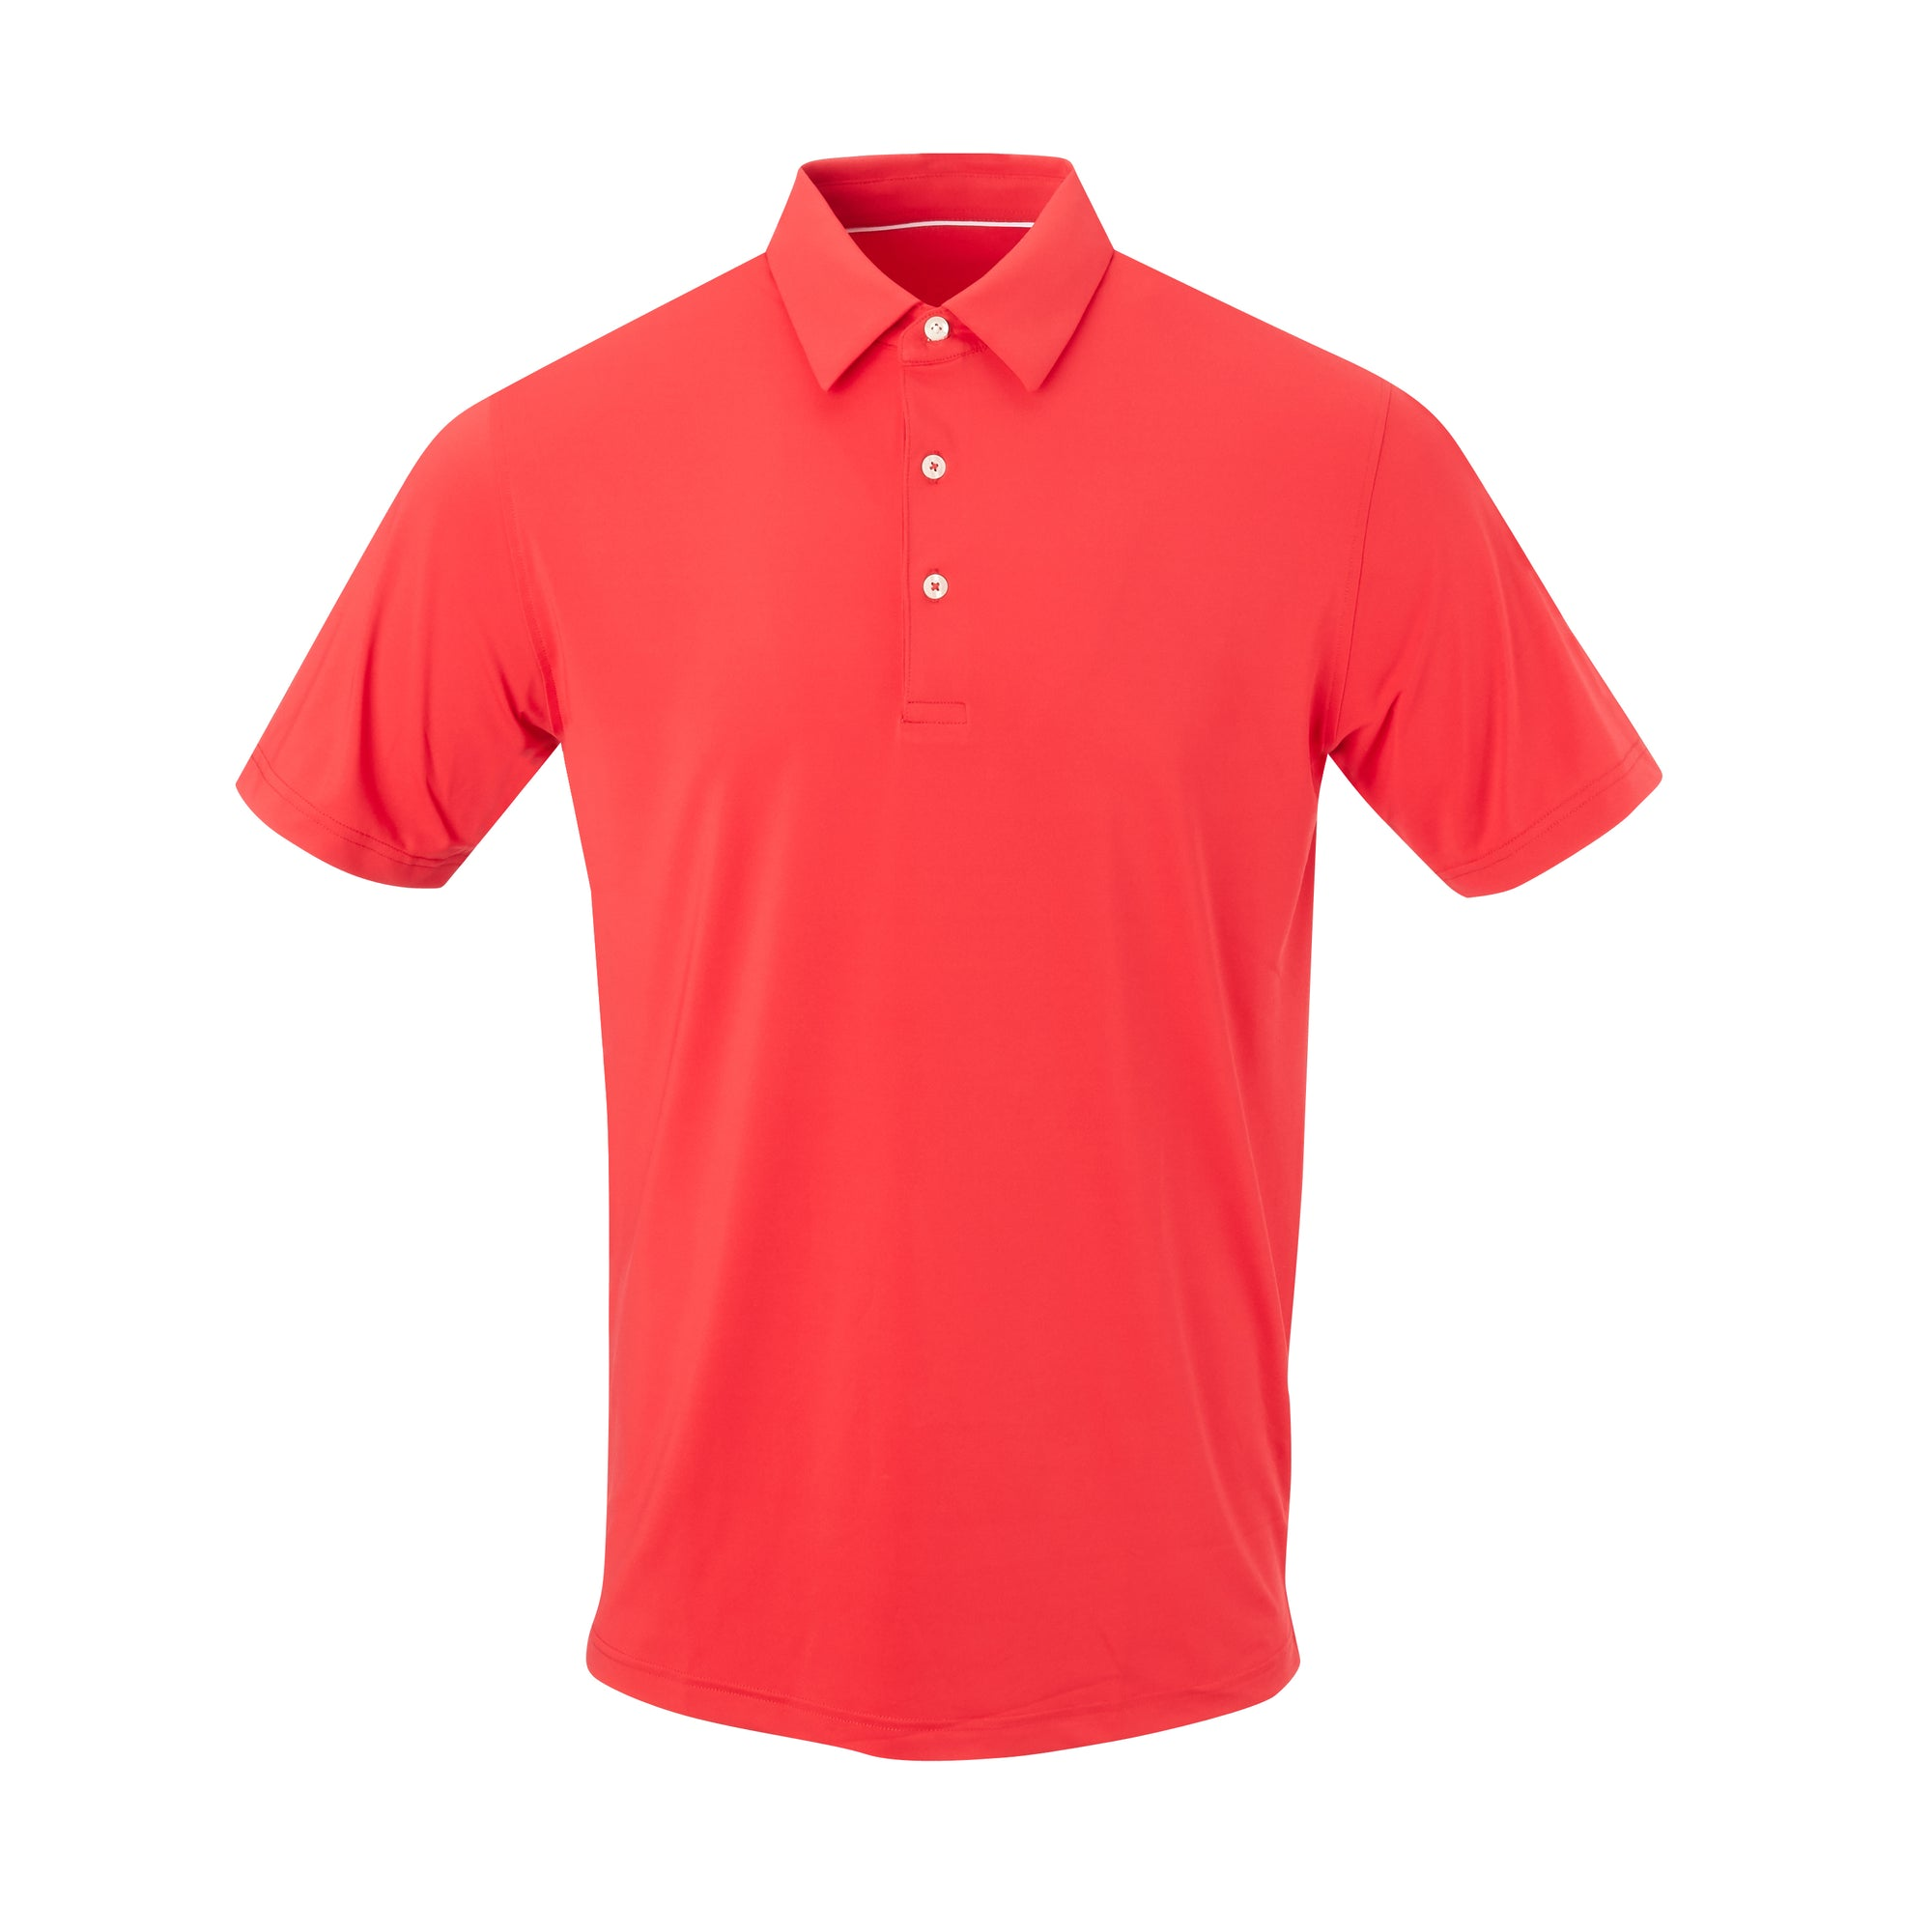 THE CLASSIC SHORT SLEEVE POLO - Patriot Red IS26000